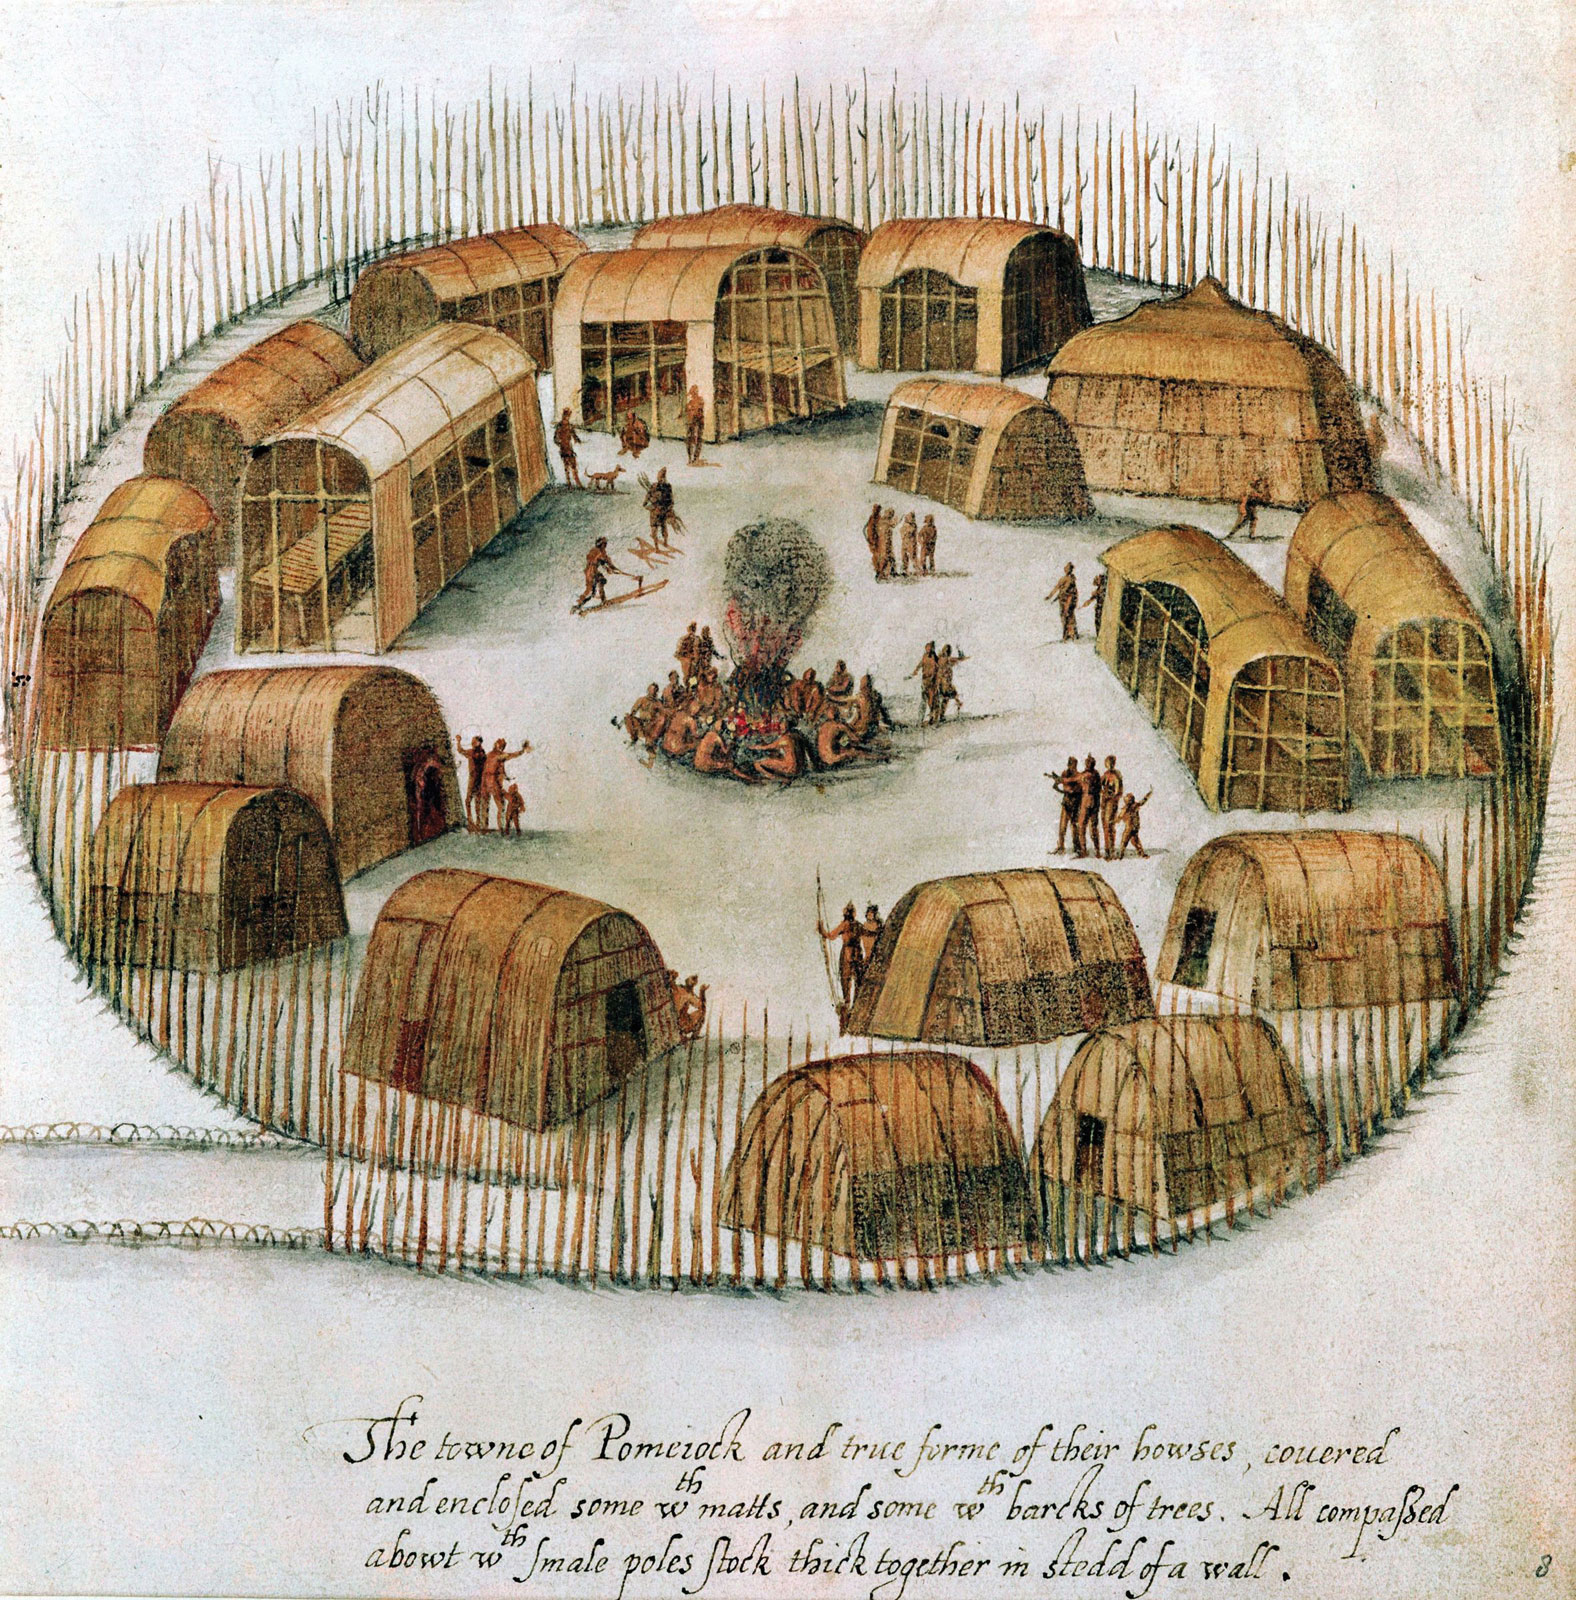 Algonquian peoples - Wikipedia, the free encyclopediaalgonquin village